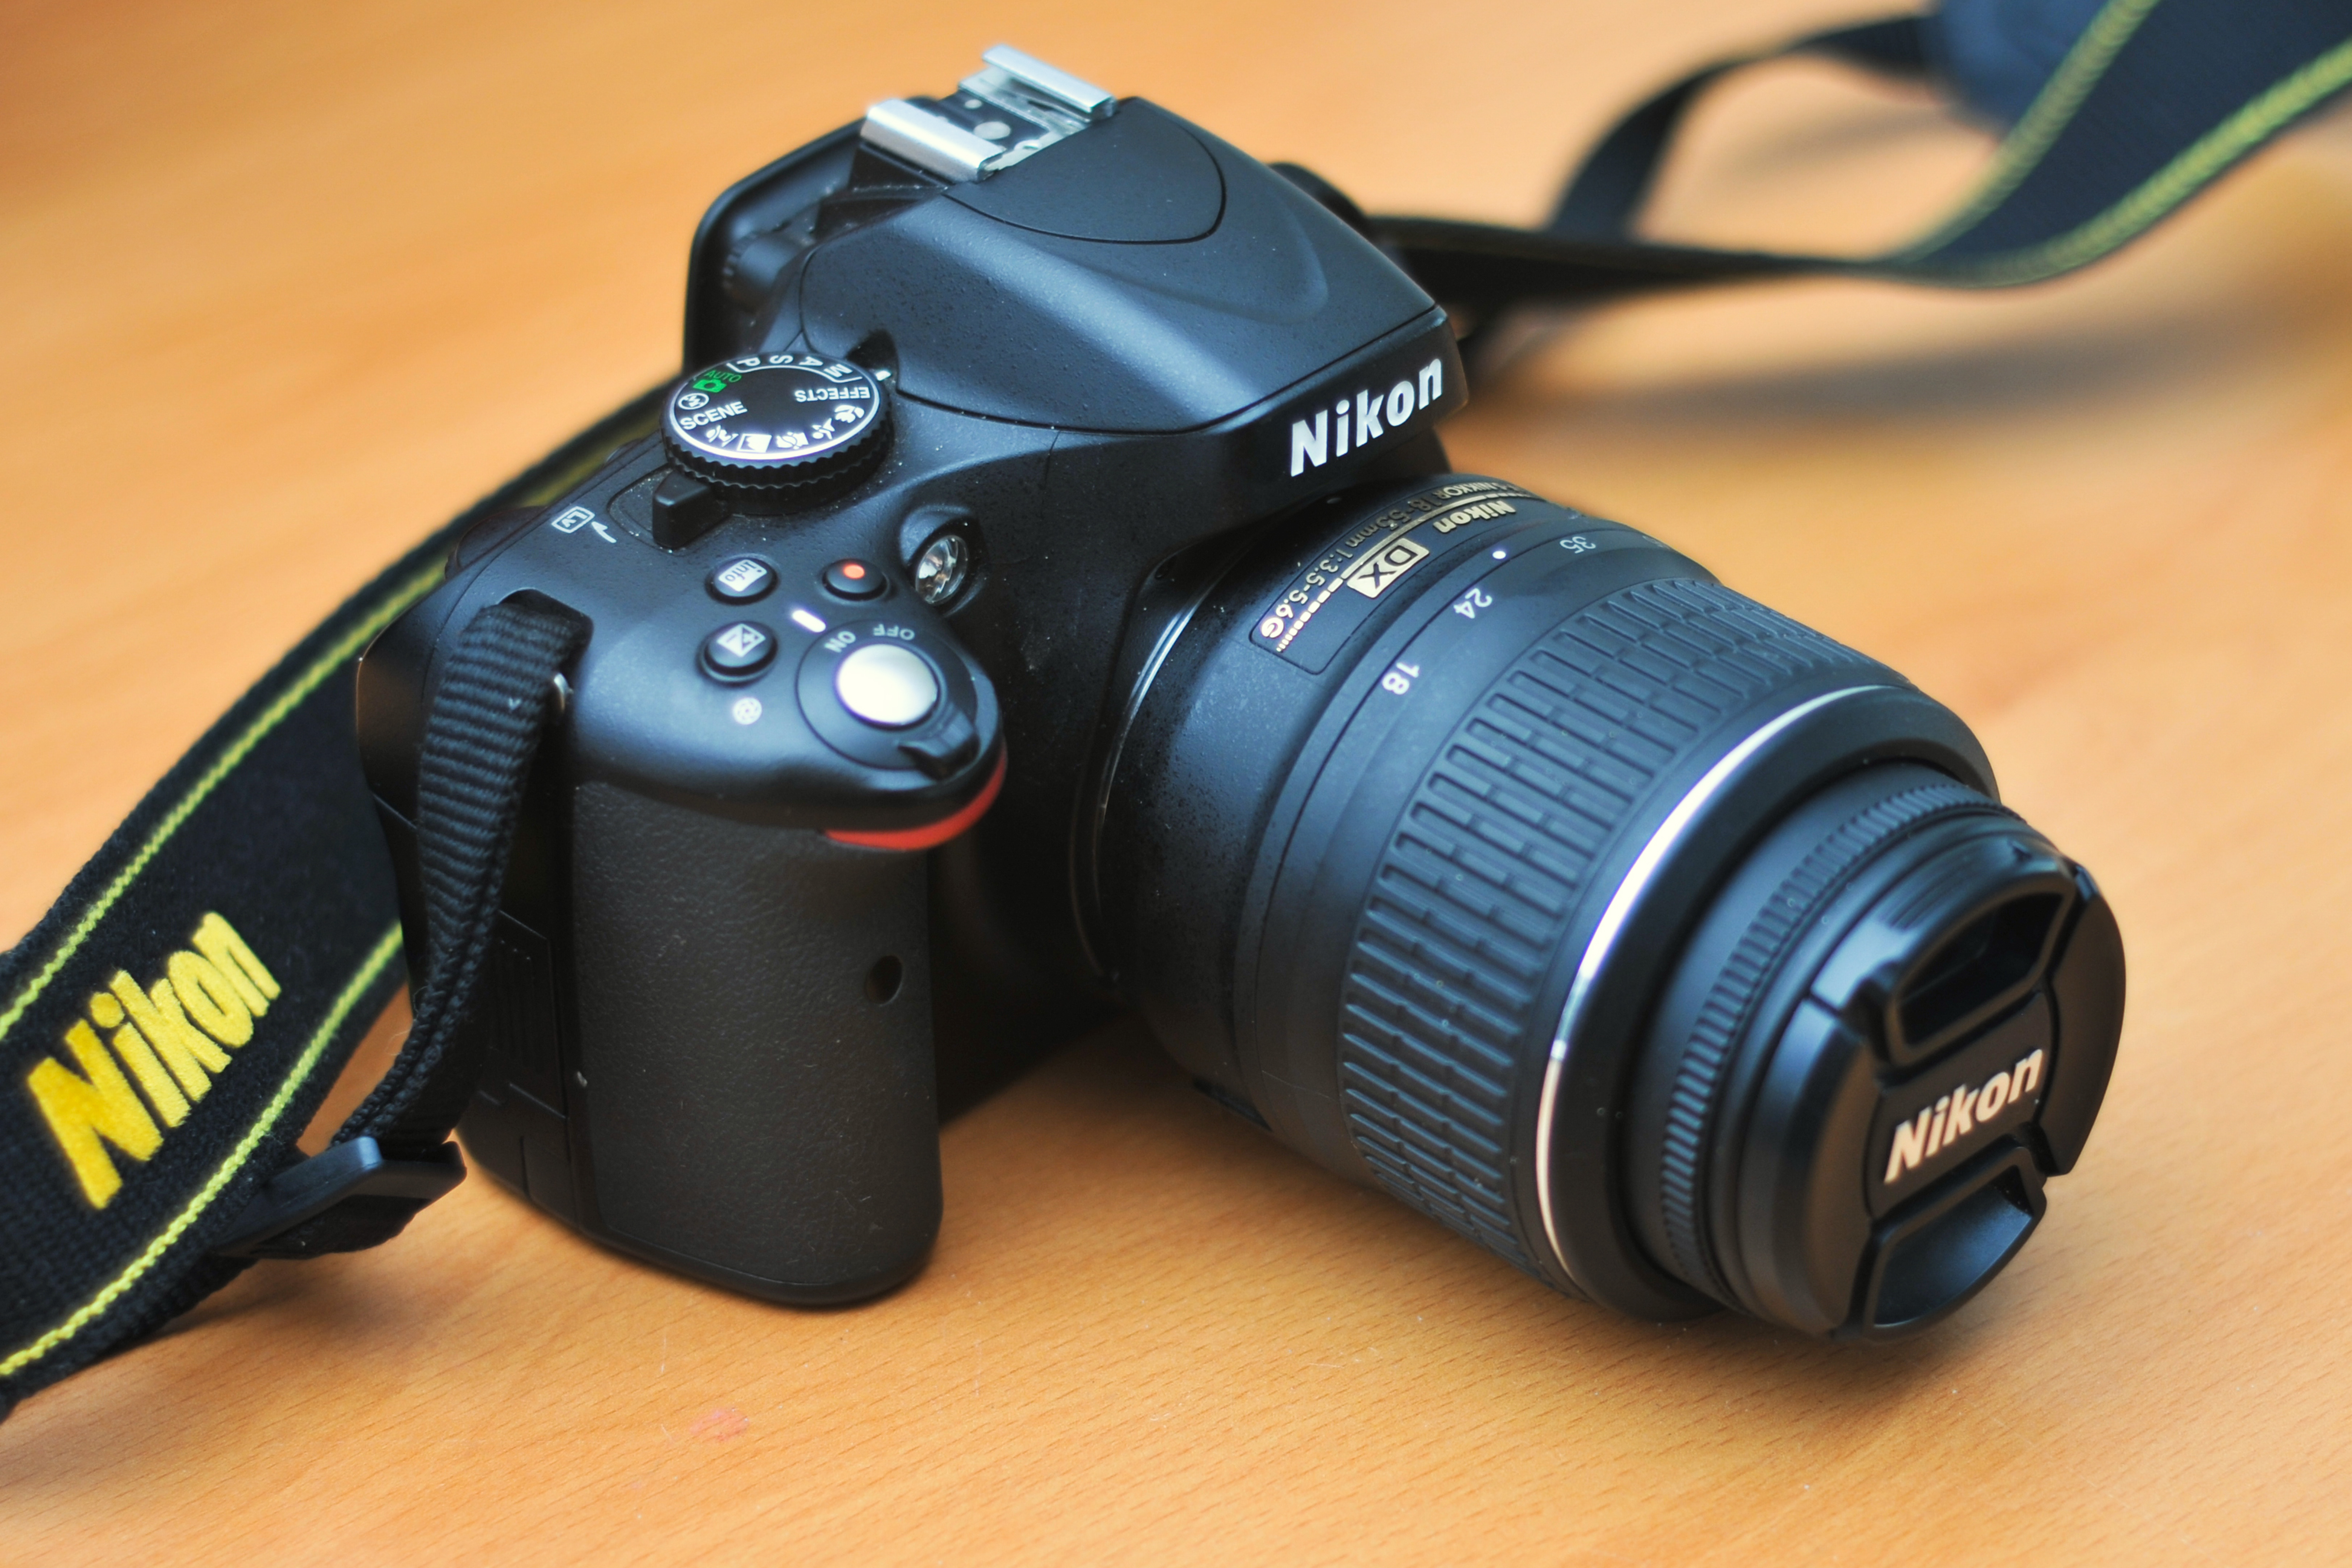 How to Set Up Continuous Shooting Mode on a Nikon D60 ...